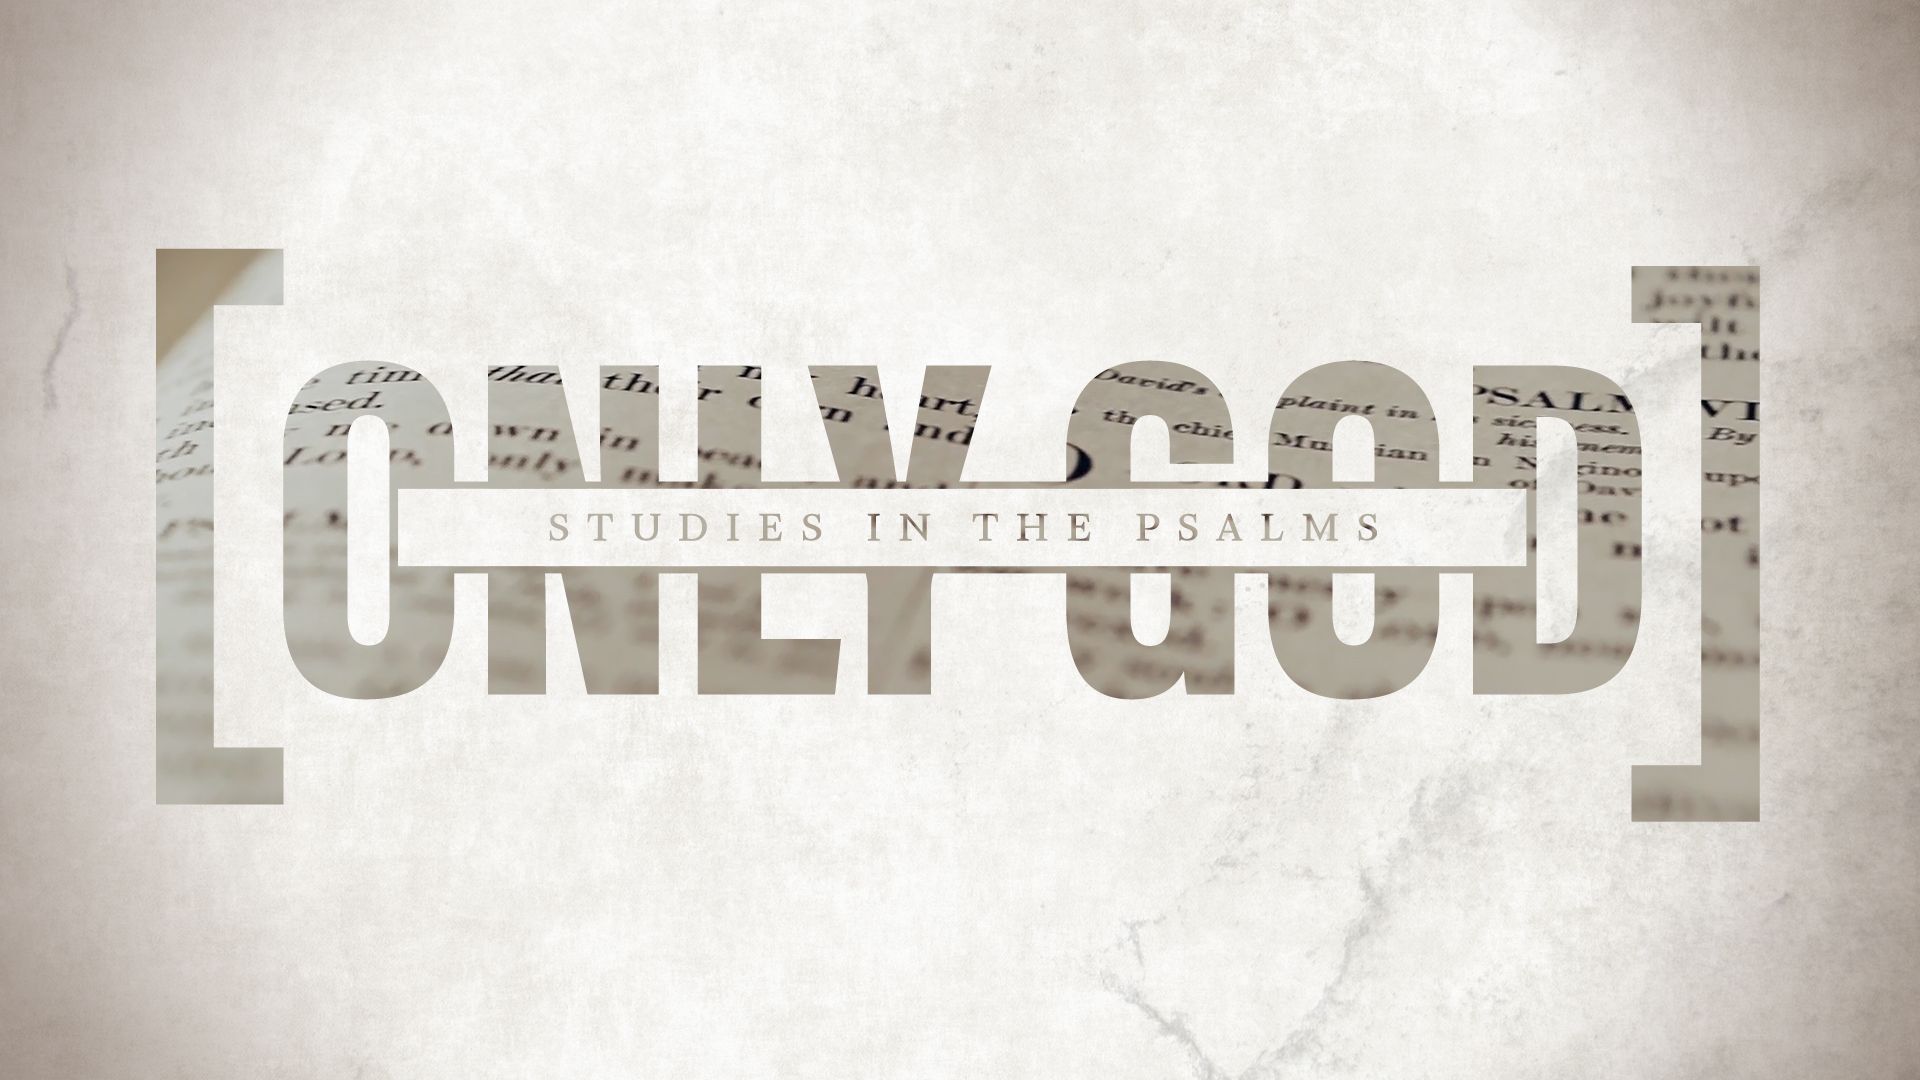 Only God: Studies in the Psalms